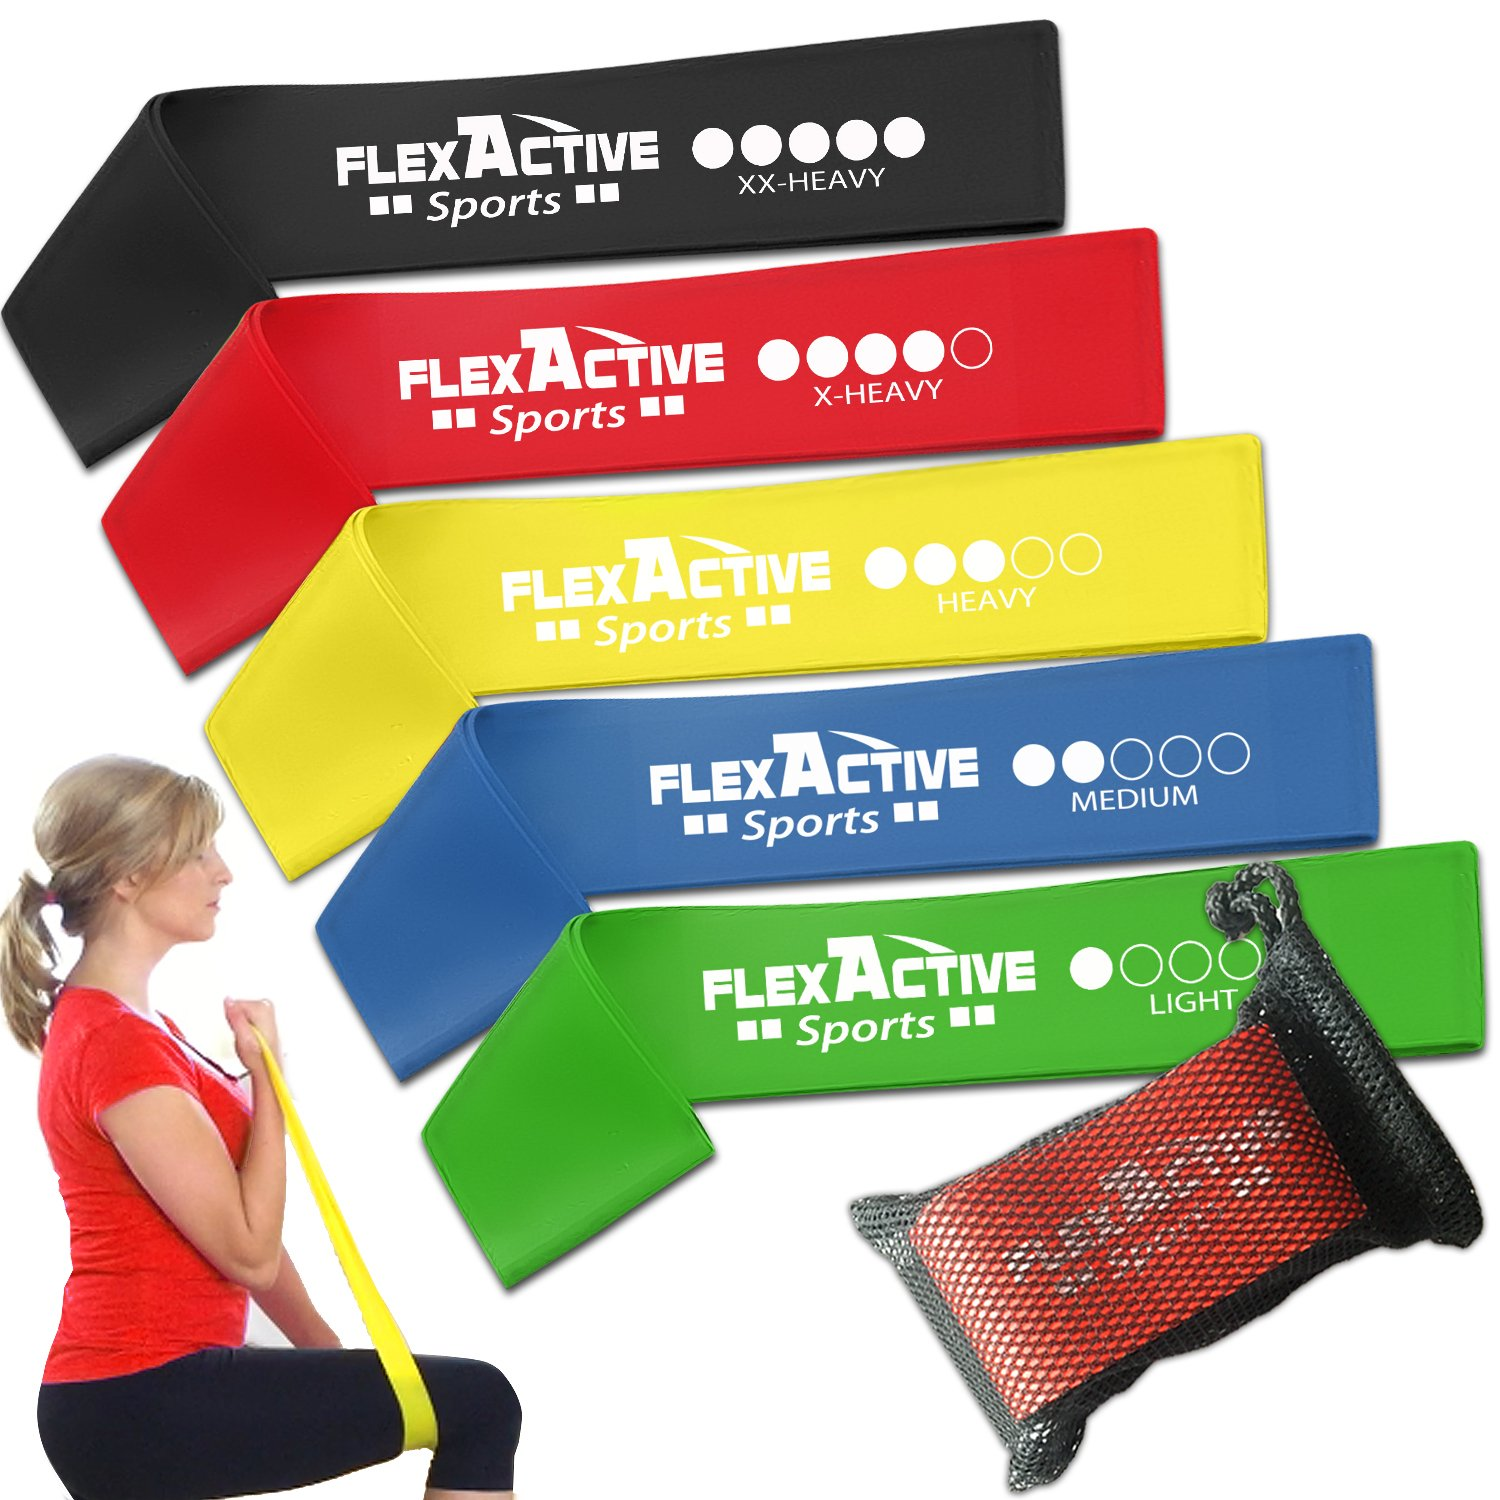 Best exercise bands for plantar fasciitis